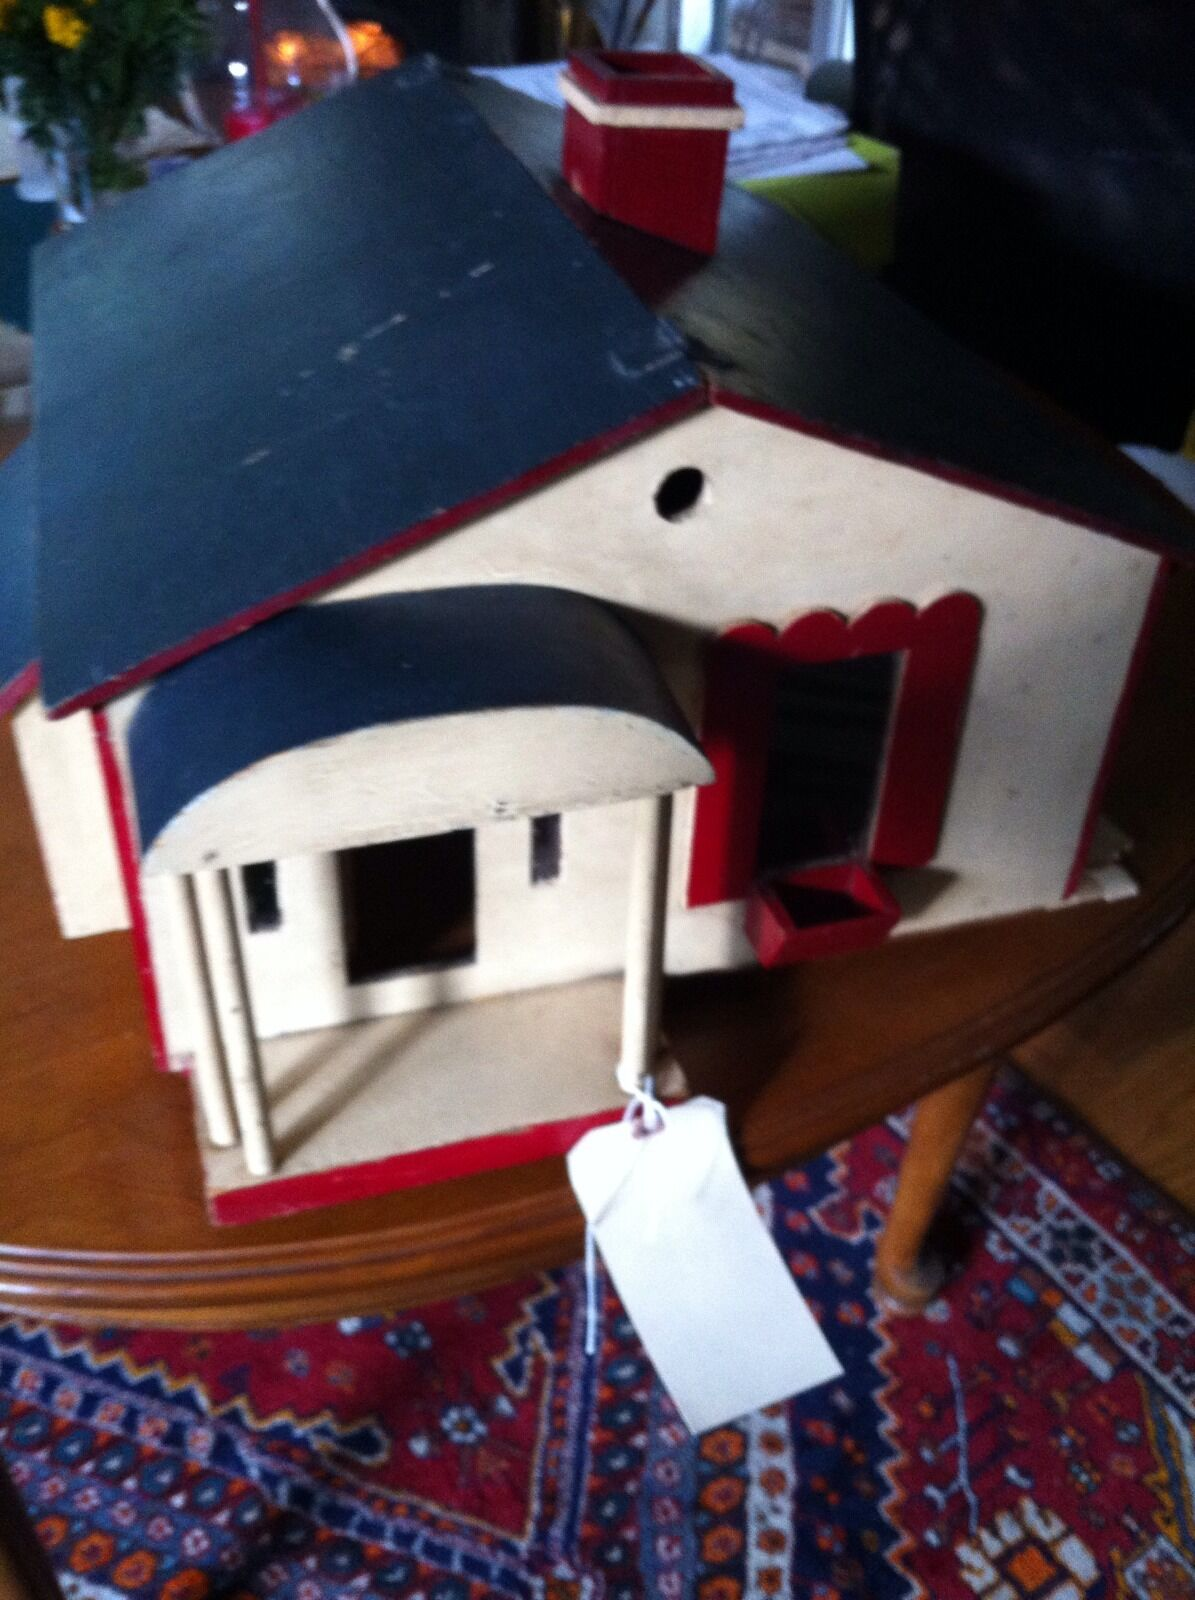 Vintage Handmade Dollhouse One story hinged roof opens on either side